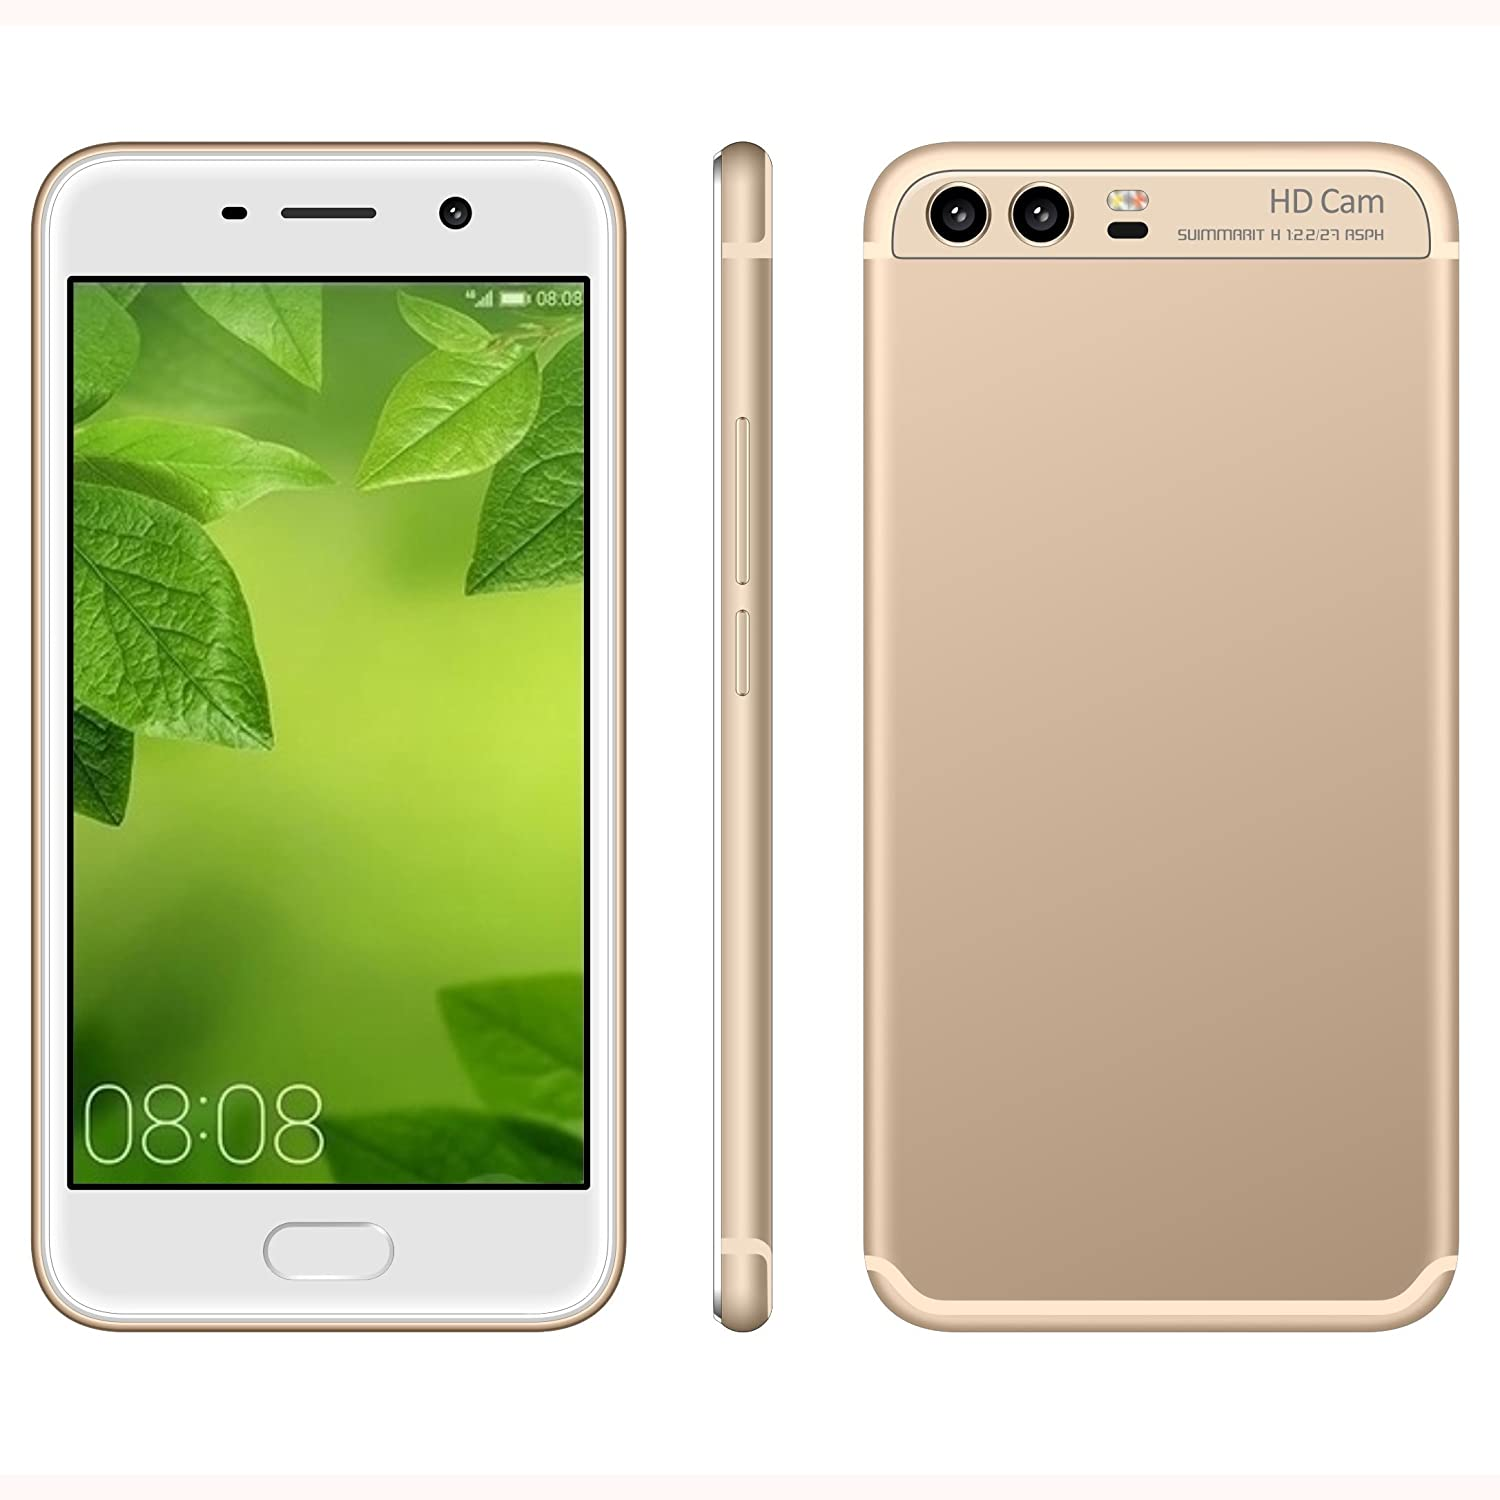 SIM Free Mobile Phones Unlocked 3G GSM Smartphones Dual SIM 5 0 Inch Touch Screen Android 6 0 Phone MTK6580 Quad Cores 1GB RAM & 4GB ROM Beauty HD 5 0MP